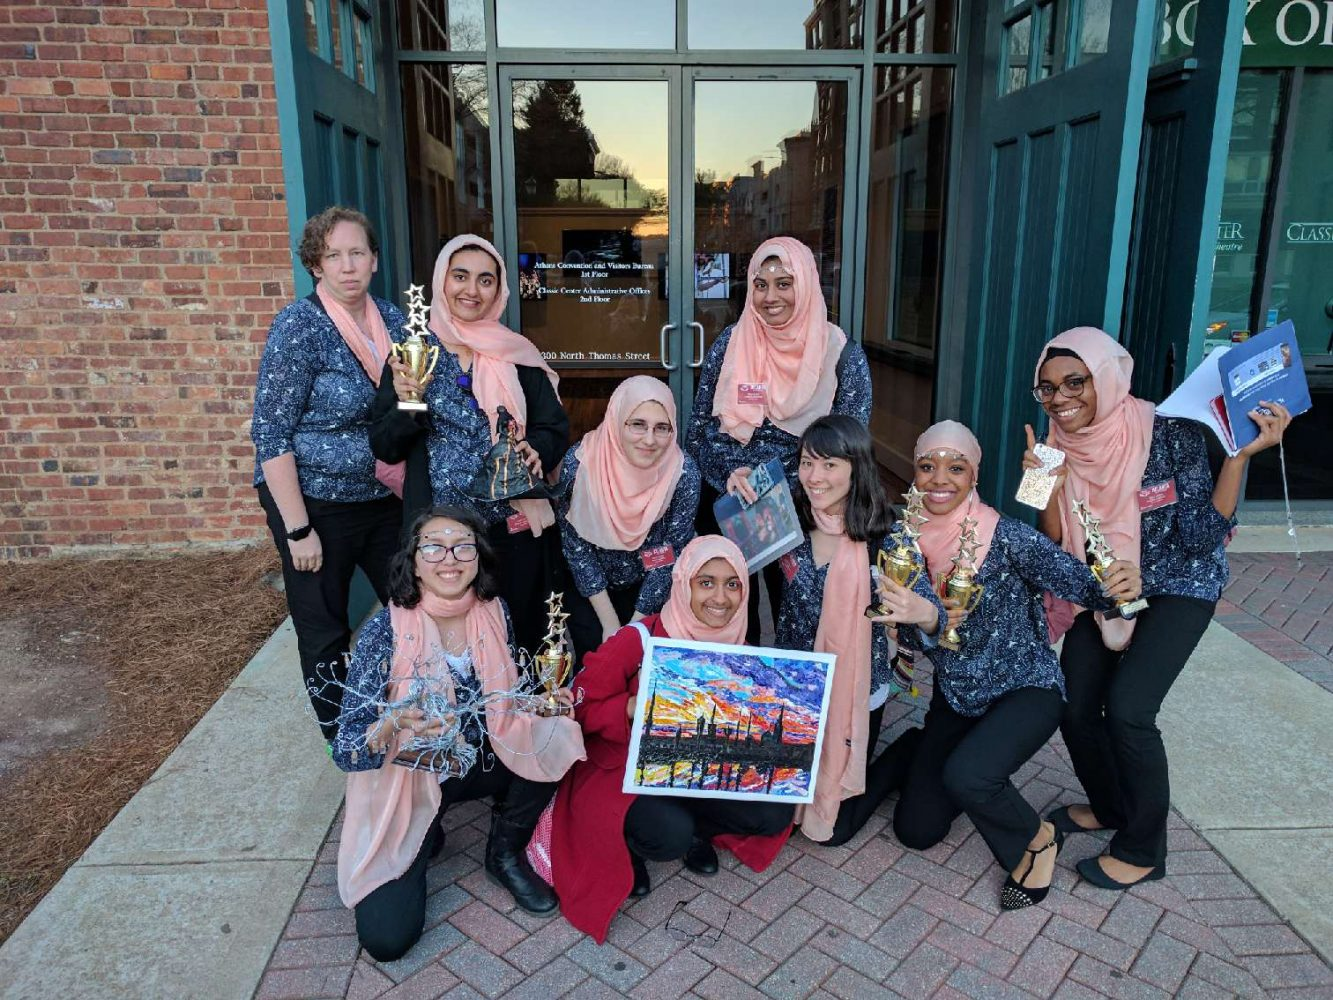 The+Grady+Muslim+Students+Association+showcase+their+awards+won+during+MIST%2C+including+second+in+photography%2C+first+and+third+in+3D+art%2C+and+first+place+in+spoken+word.